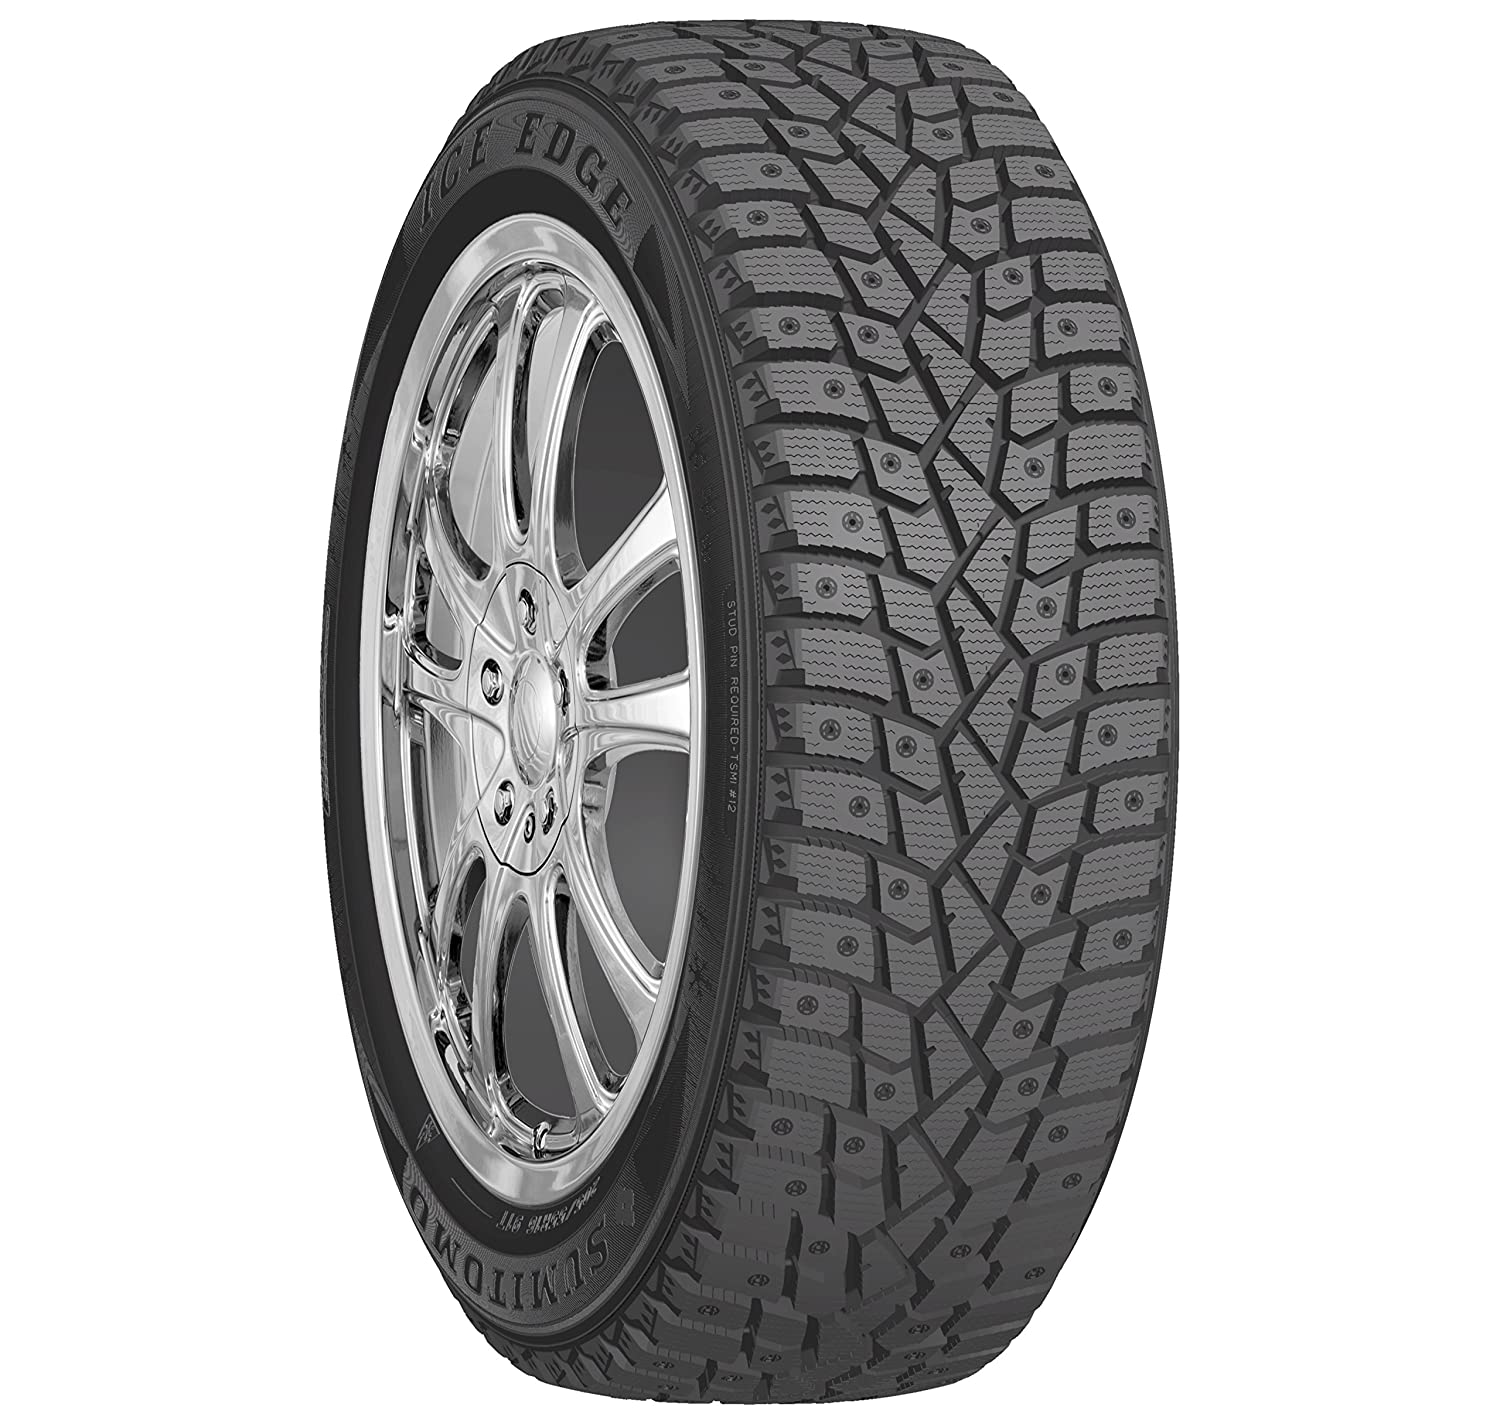 Sumitomo Ice Edge Studable-Winter Radial Tire - 235/60R16 100T EDG56